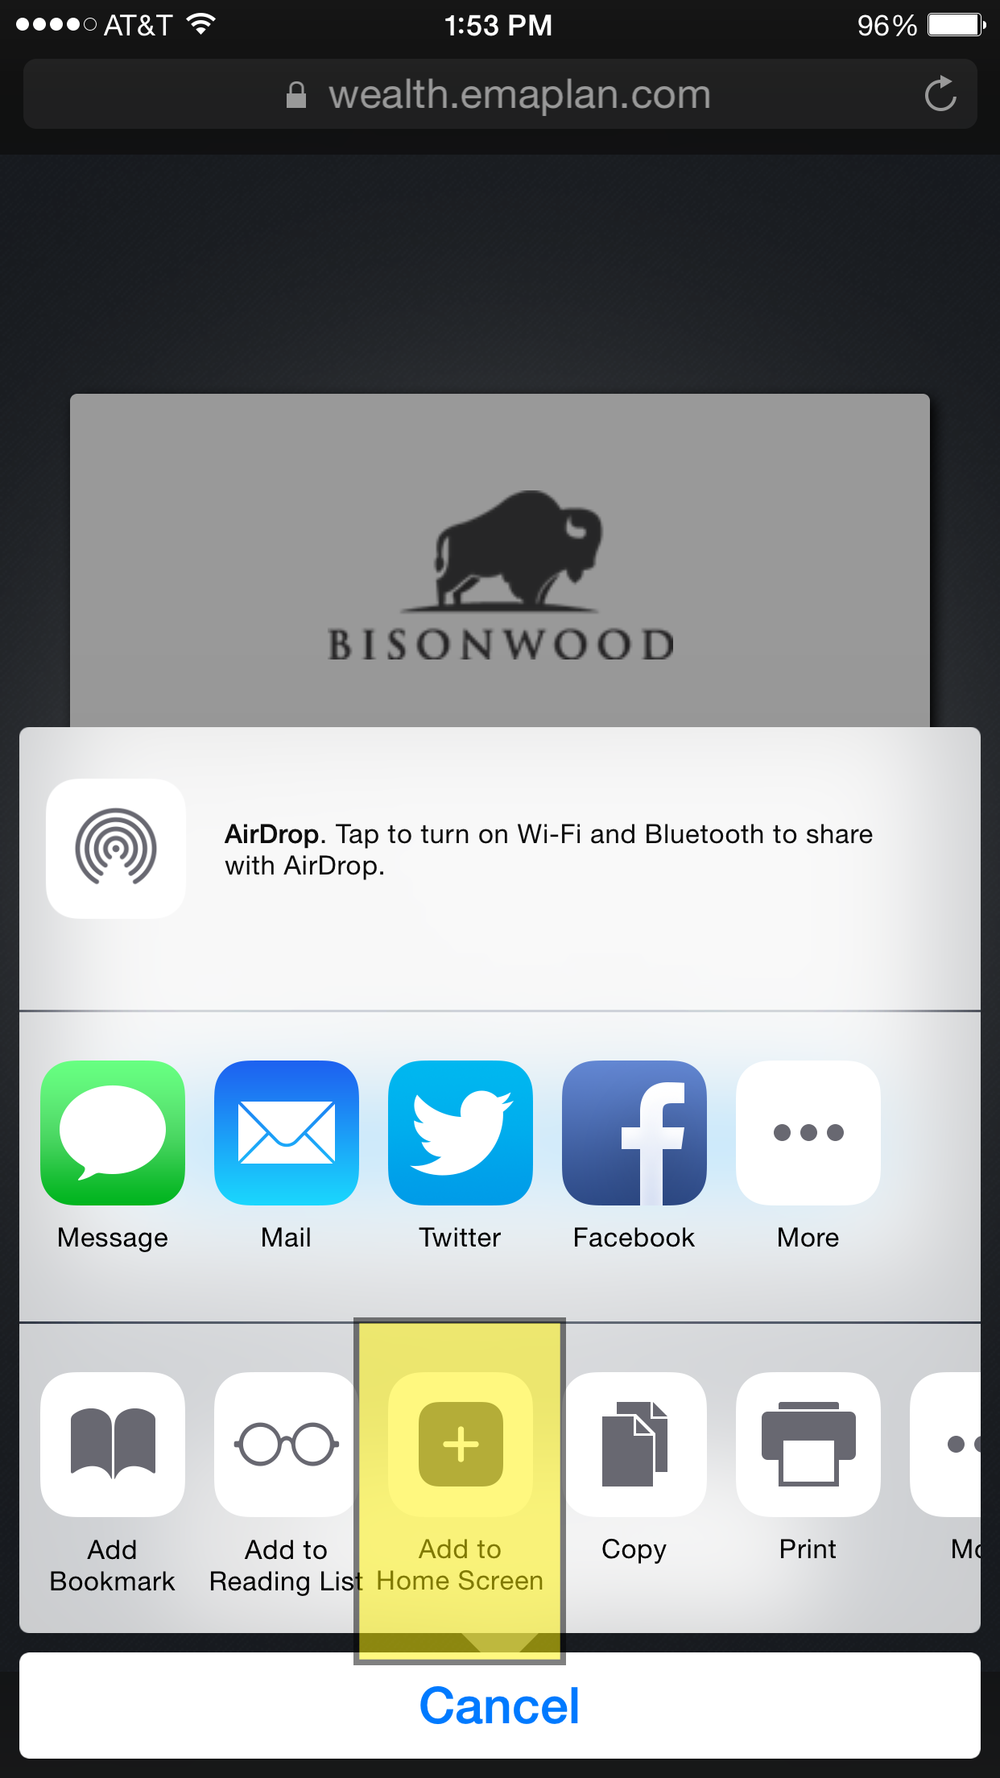 Click the 'Add to Home Screen' button, which is a square with a little plus inside of it.